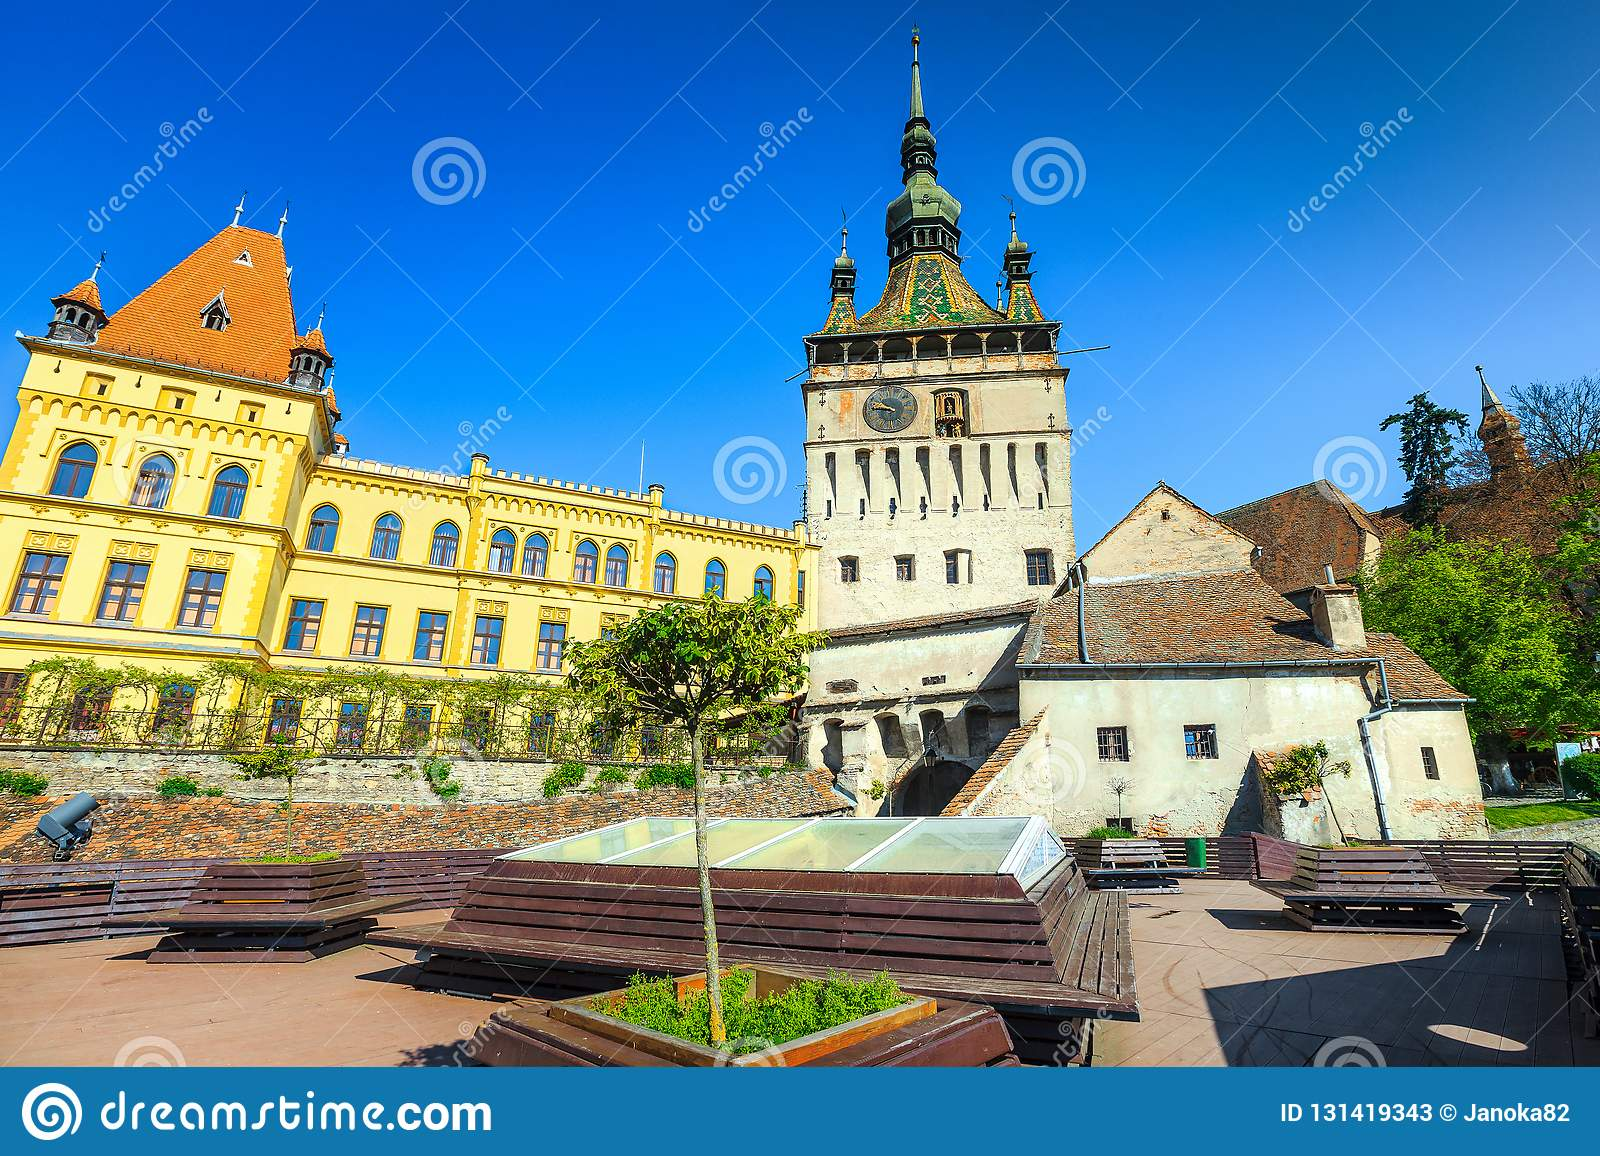 Fantastic clock tower building in the best touristic city, resting place with benches, Sighisoara, Transylvania, Romania, Europe